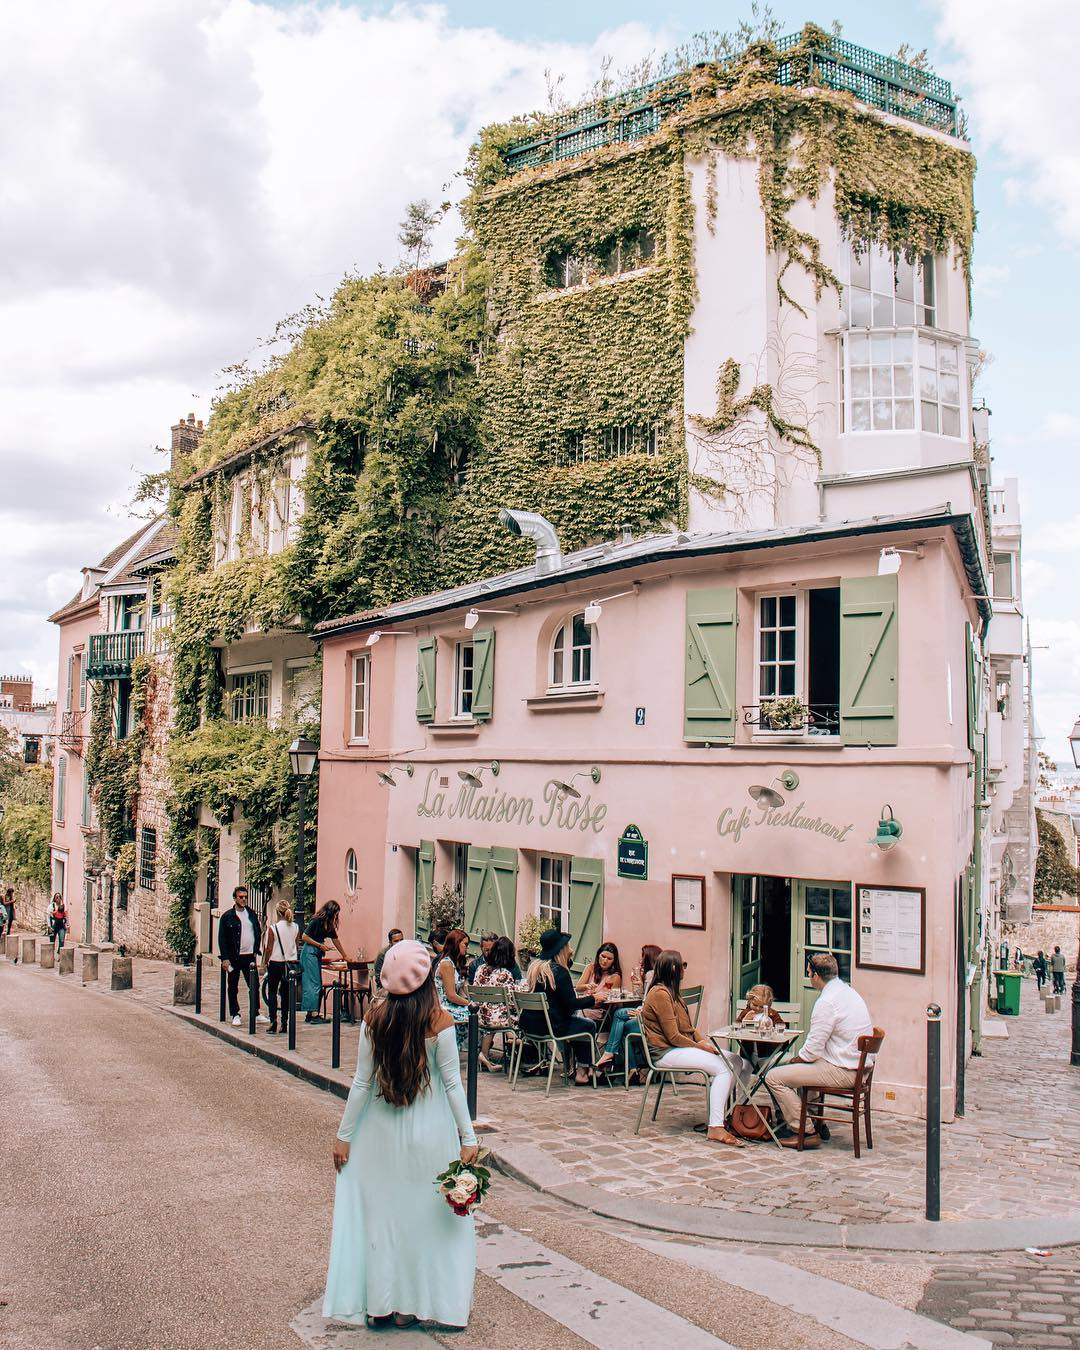 Best Of Terrasse Paris 12 Best Photo Spots In Paris For Epic Instagram Shots Wandering